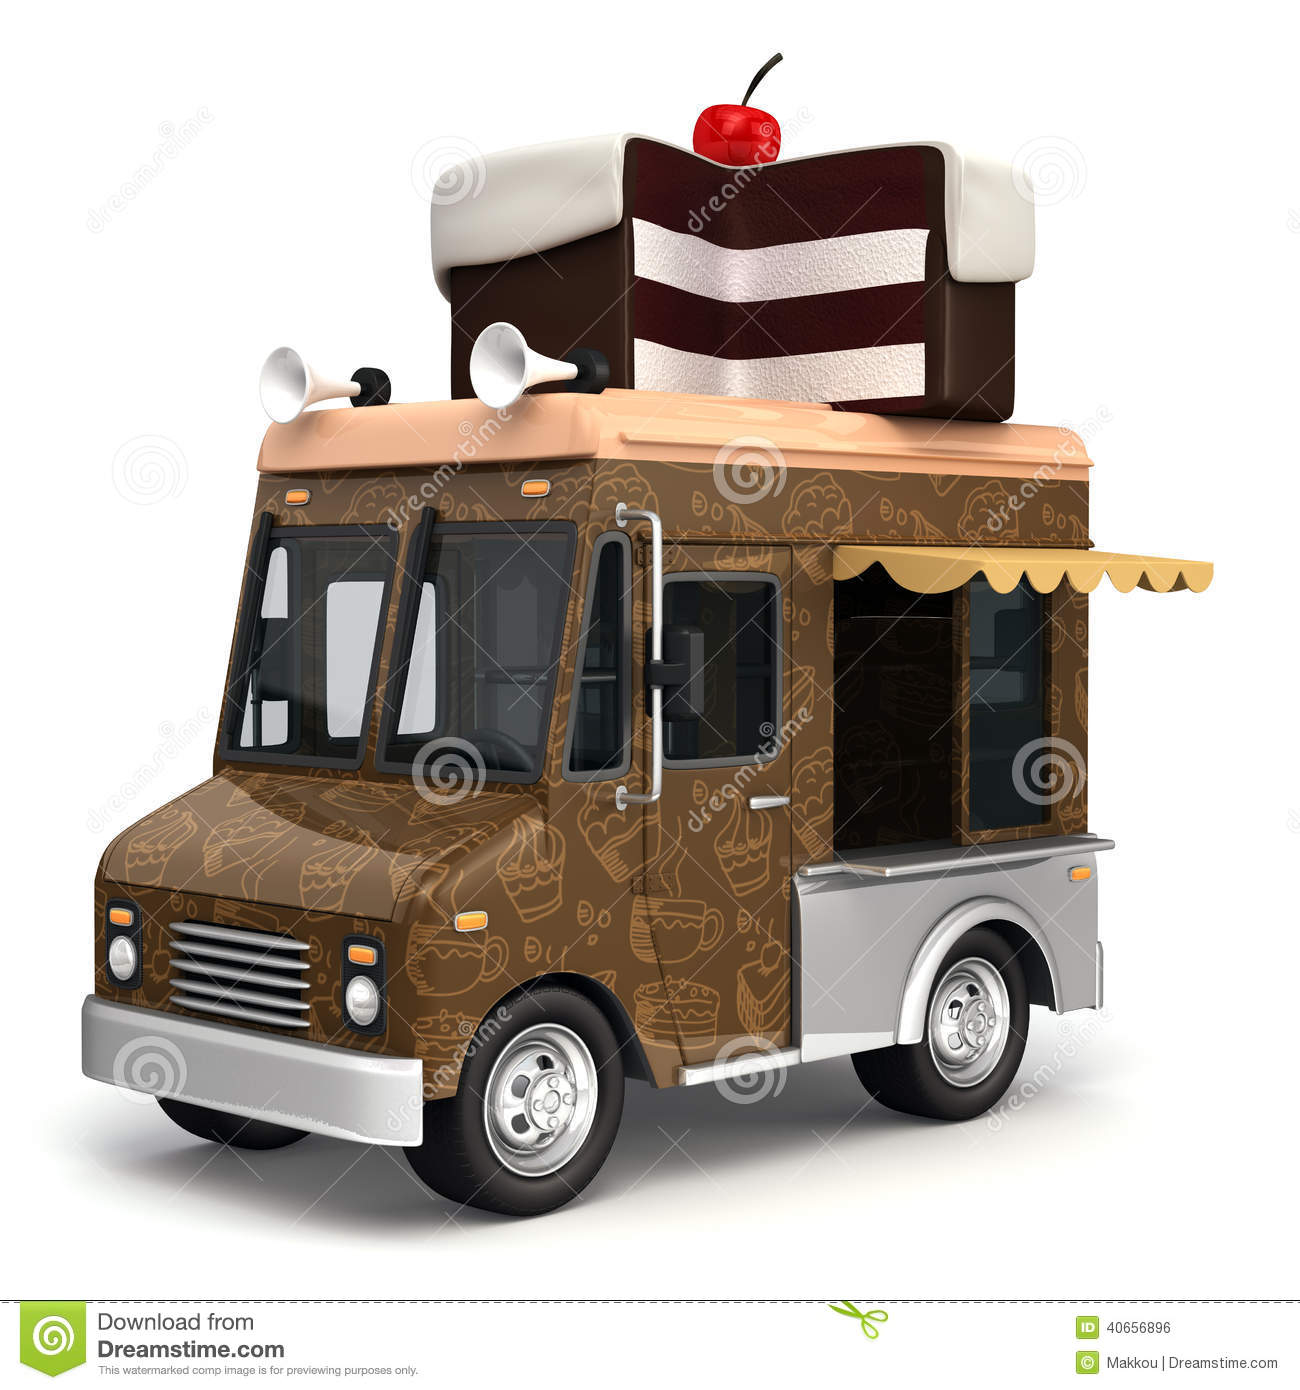 Food truck with cake